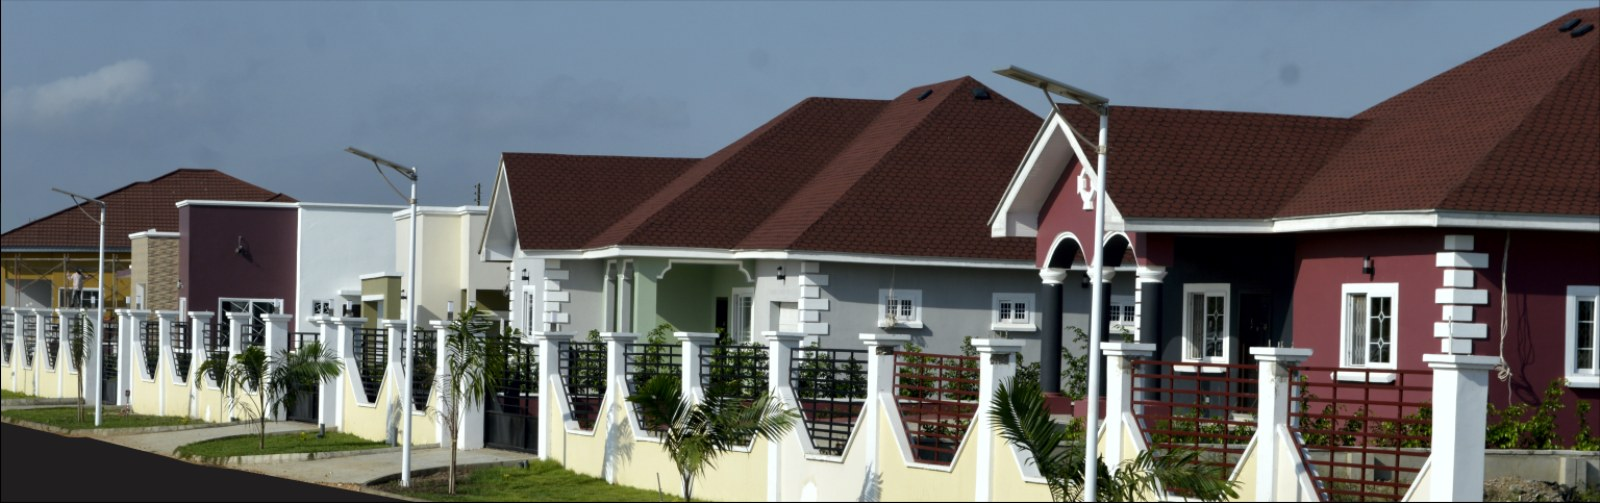 elegant home. ELEGANT COURTS-KATAMANSU (NOW SELLING) Elegant Home